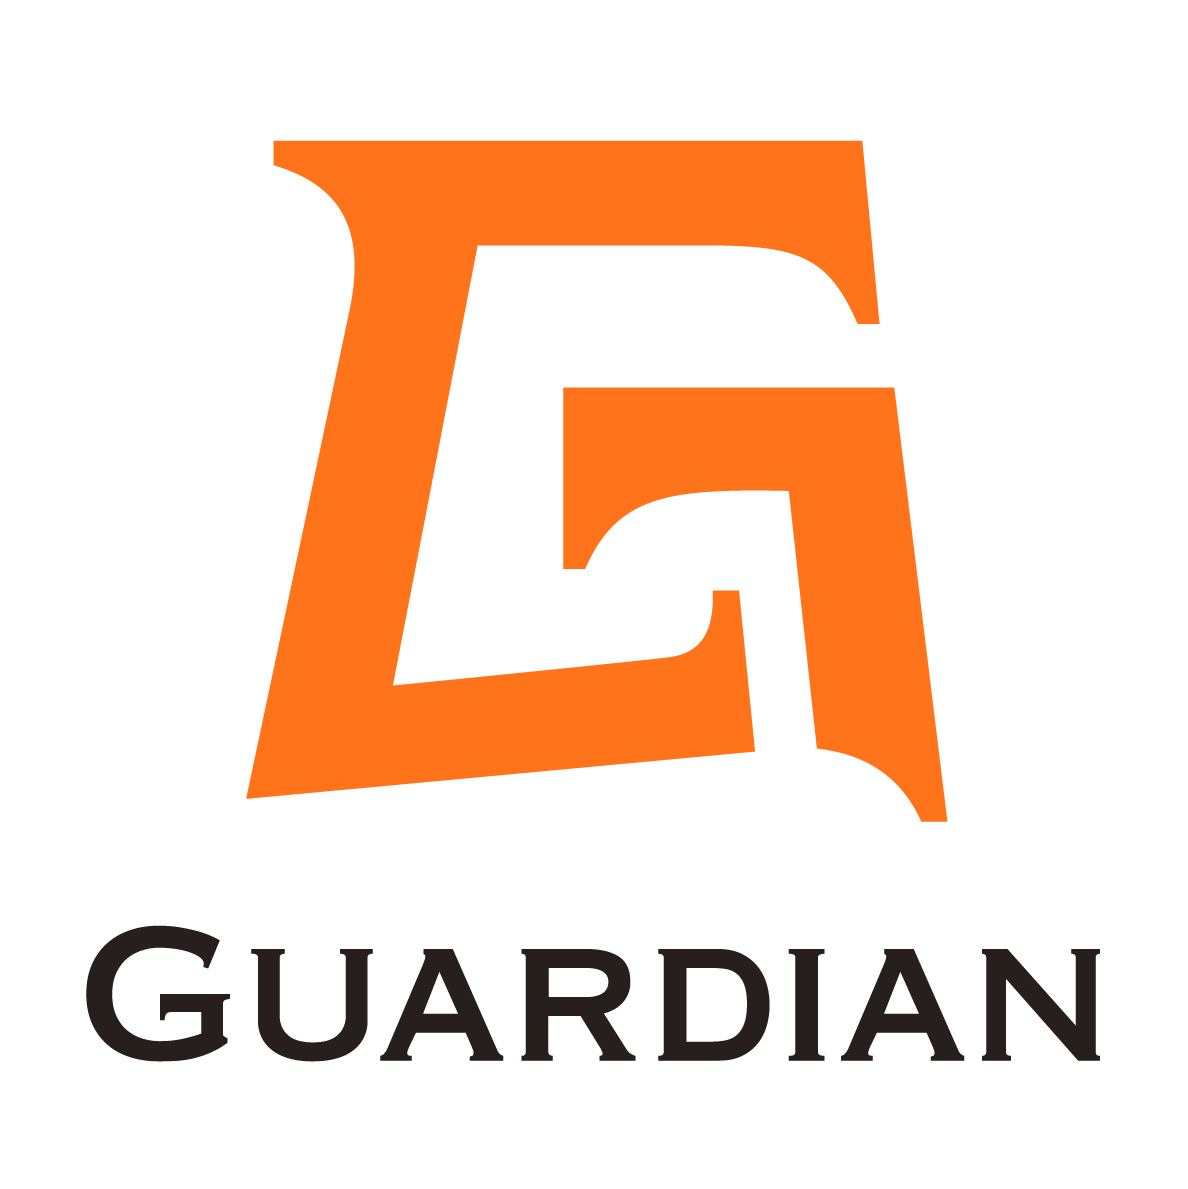 GUARDIAN